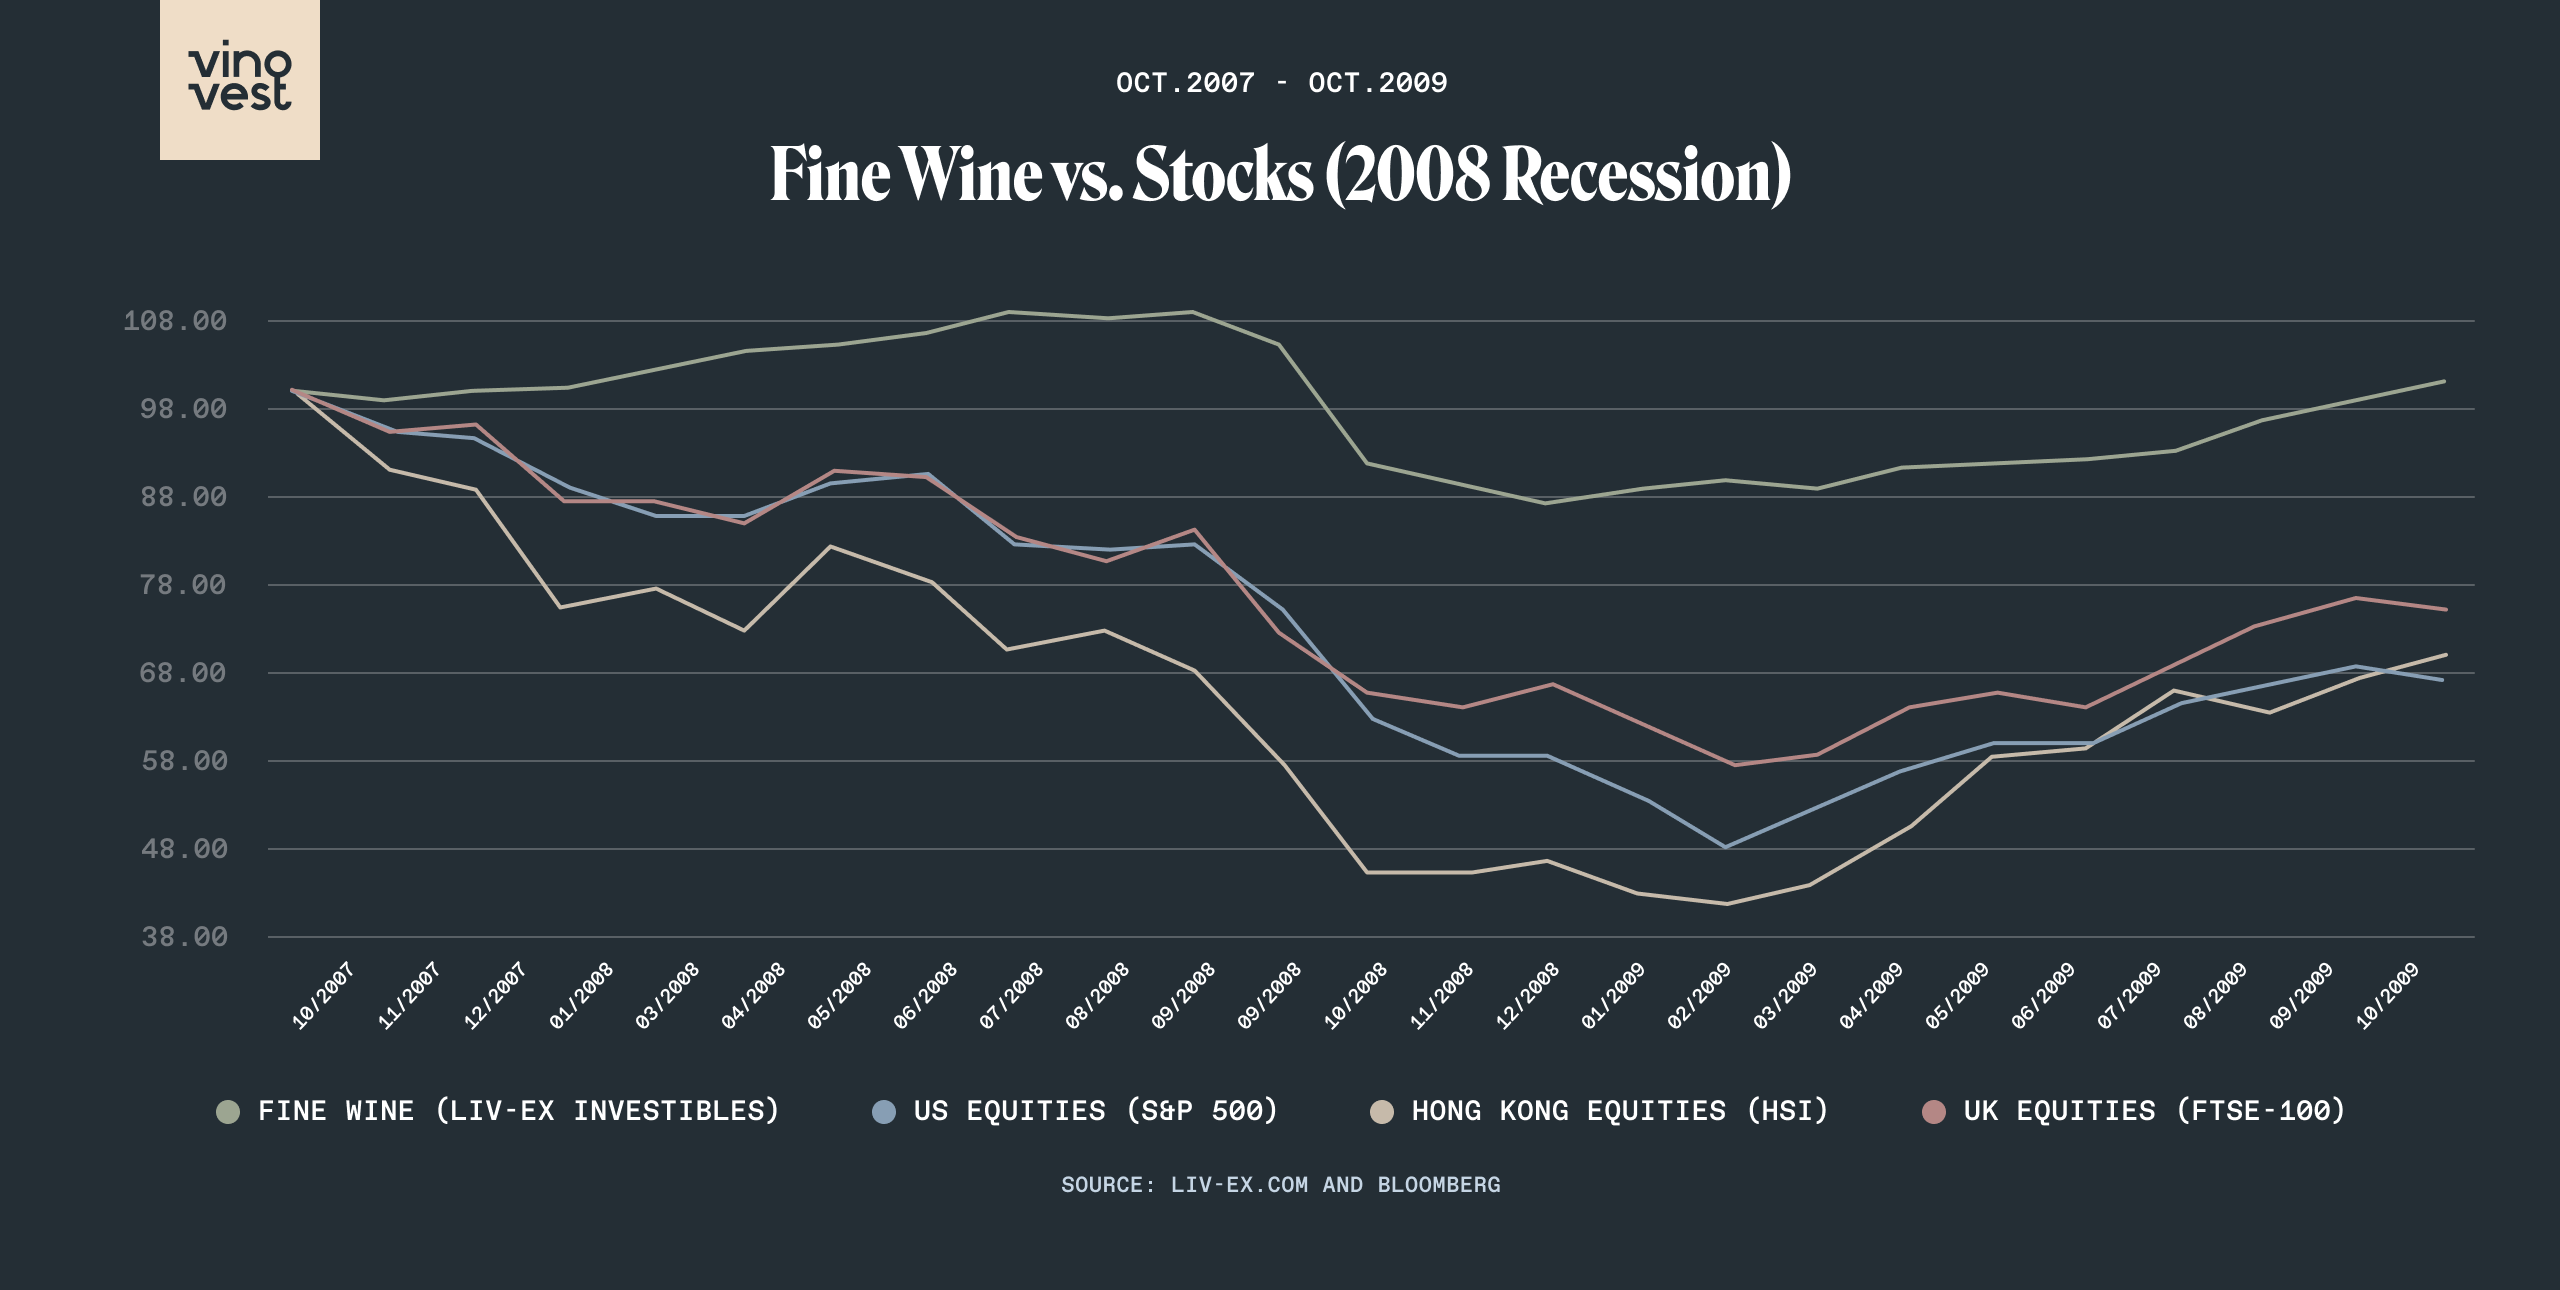 Fine Wine vs Stocks Great Recession